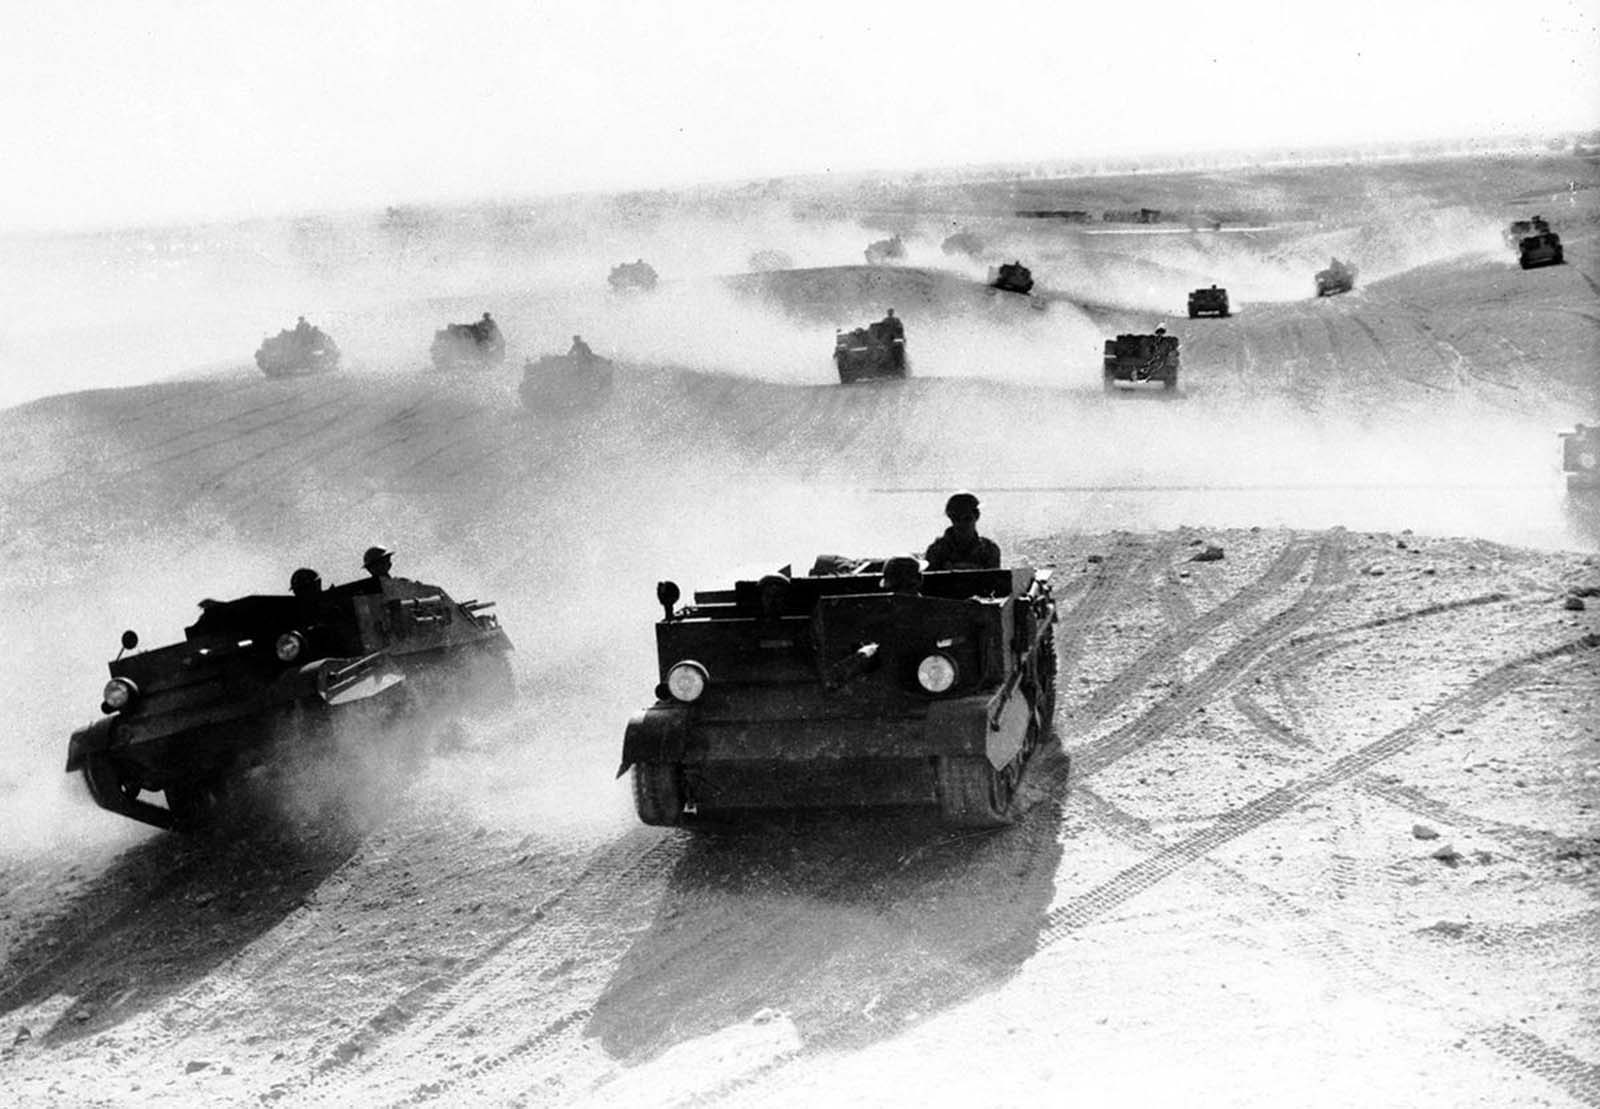 A squadron of Bren gun carriers, manned by the Australian Light Cavalry, rolls through the Egyptian desert in January of 1941. The troops performed maneuvers in preparation for the Allied campaign in North Africa.